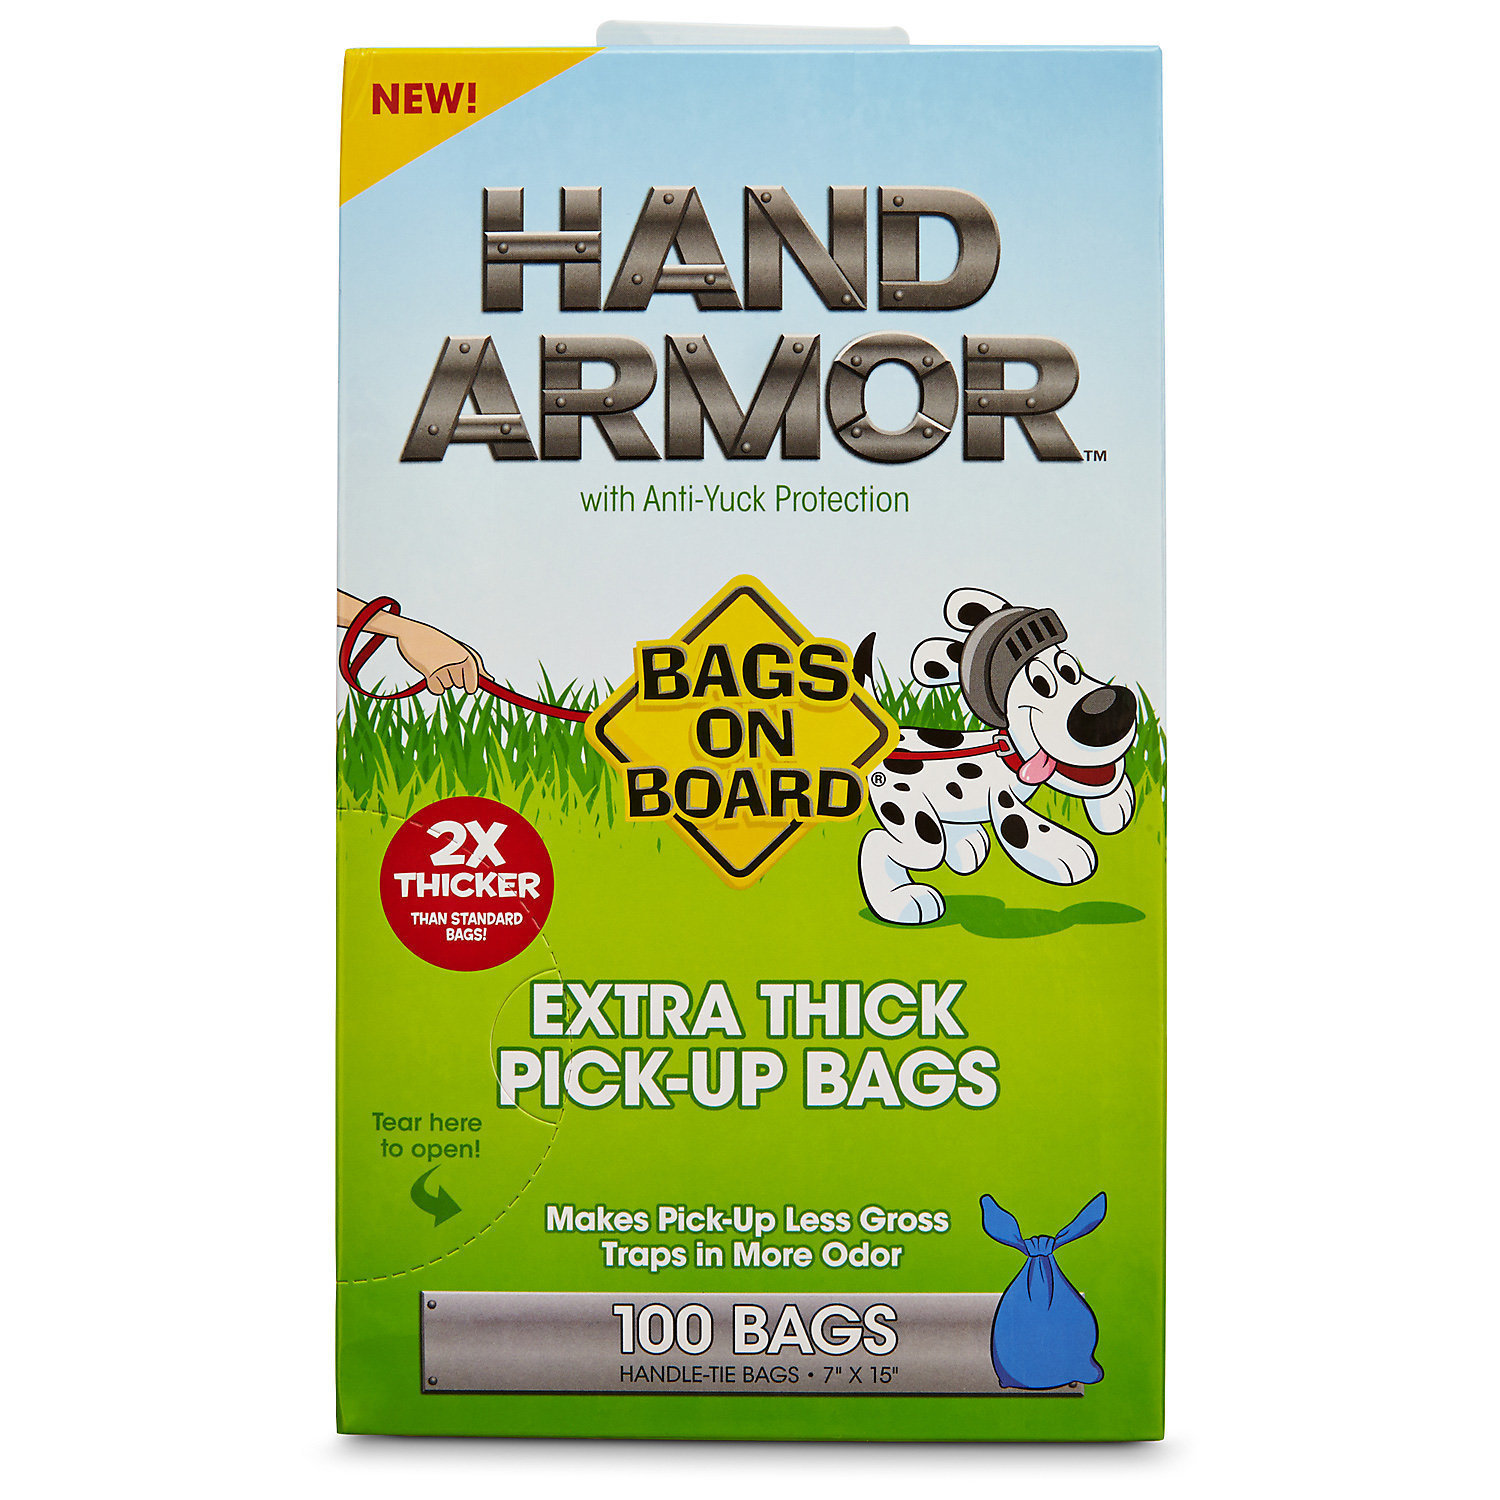 Bags on Board Hand Armor Extra Thick Dog Waste Pick-Up Bags, 100 count (B.B5/AM100)